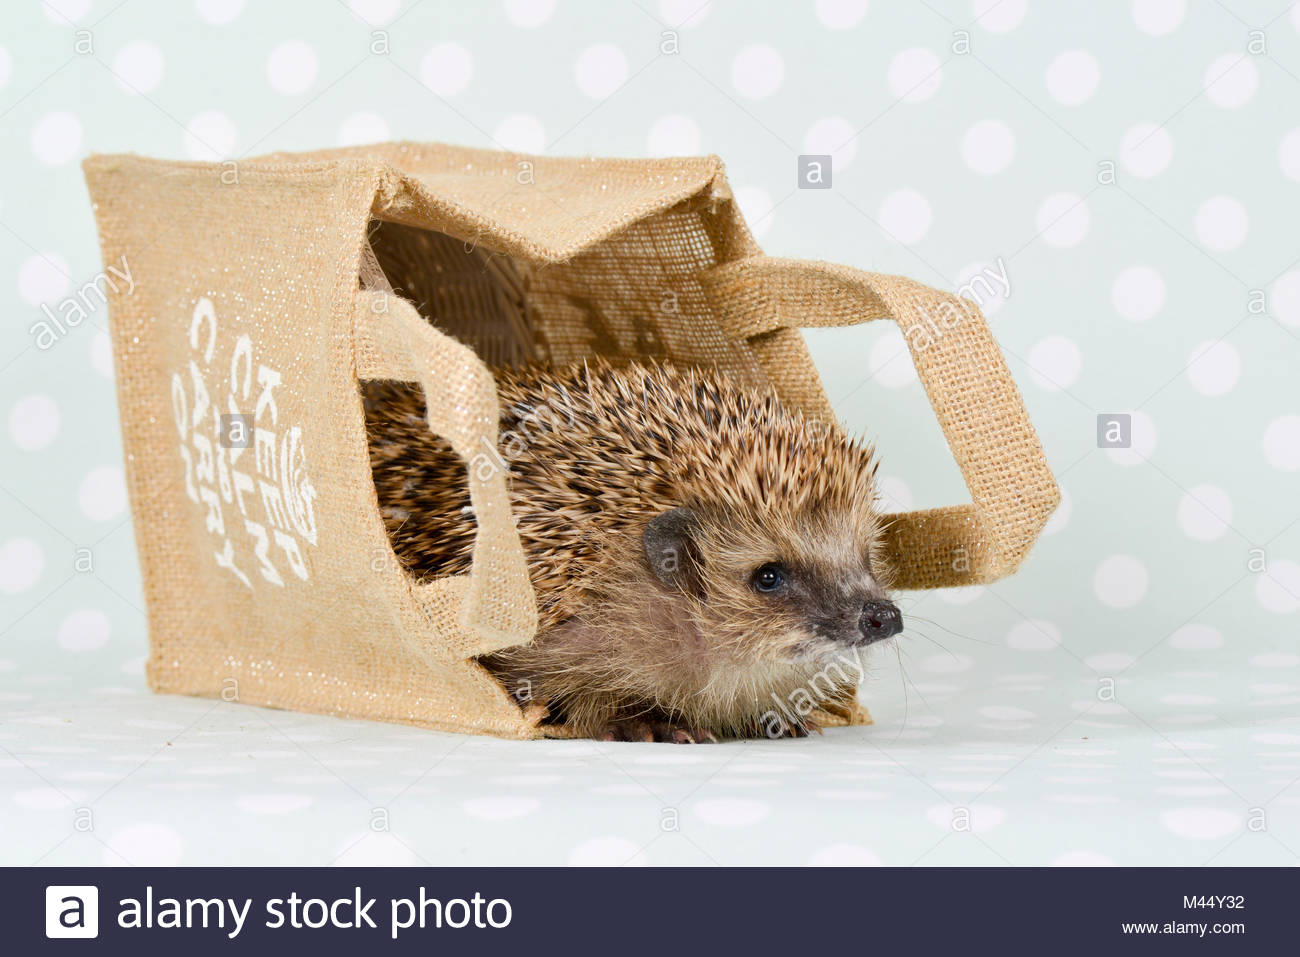 European Hedgehog (Erinaceus europaeus). Adult in a paper carrier. Studio picture, seen against a green background - Stock Image